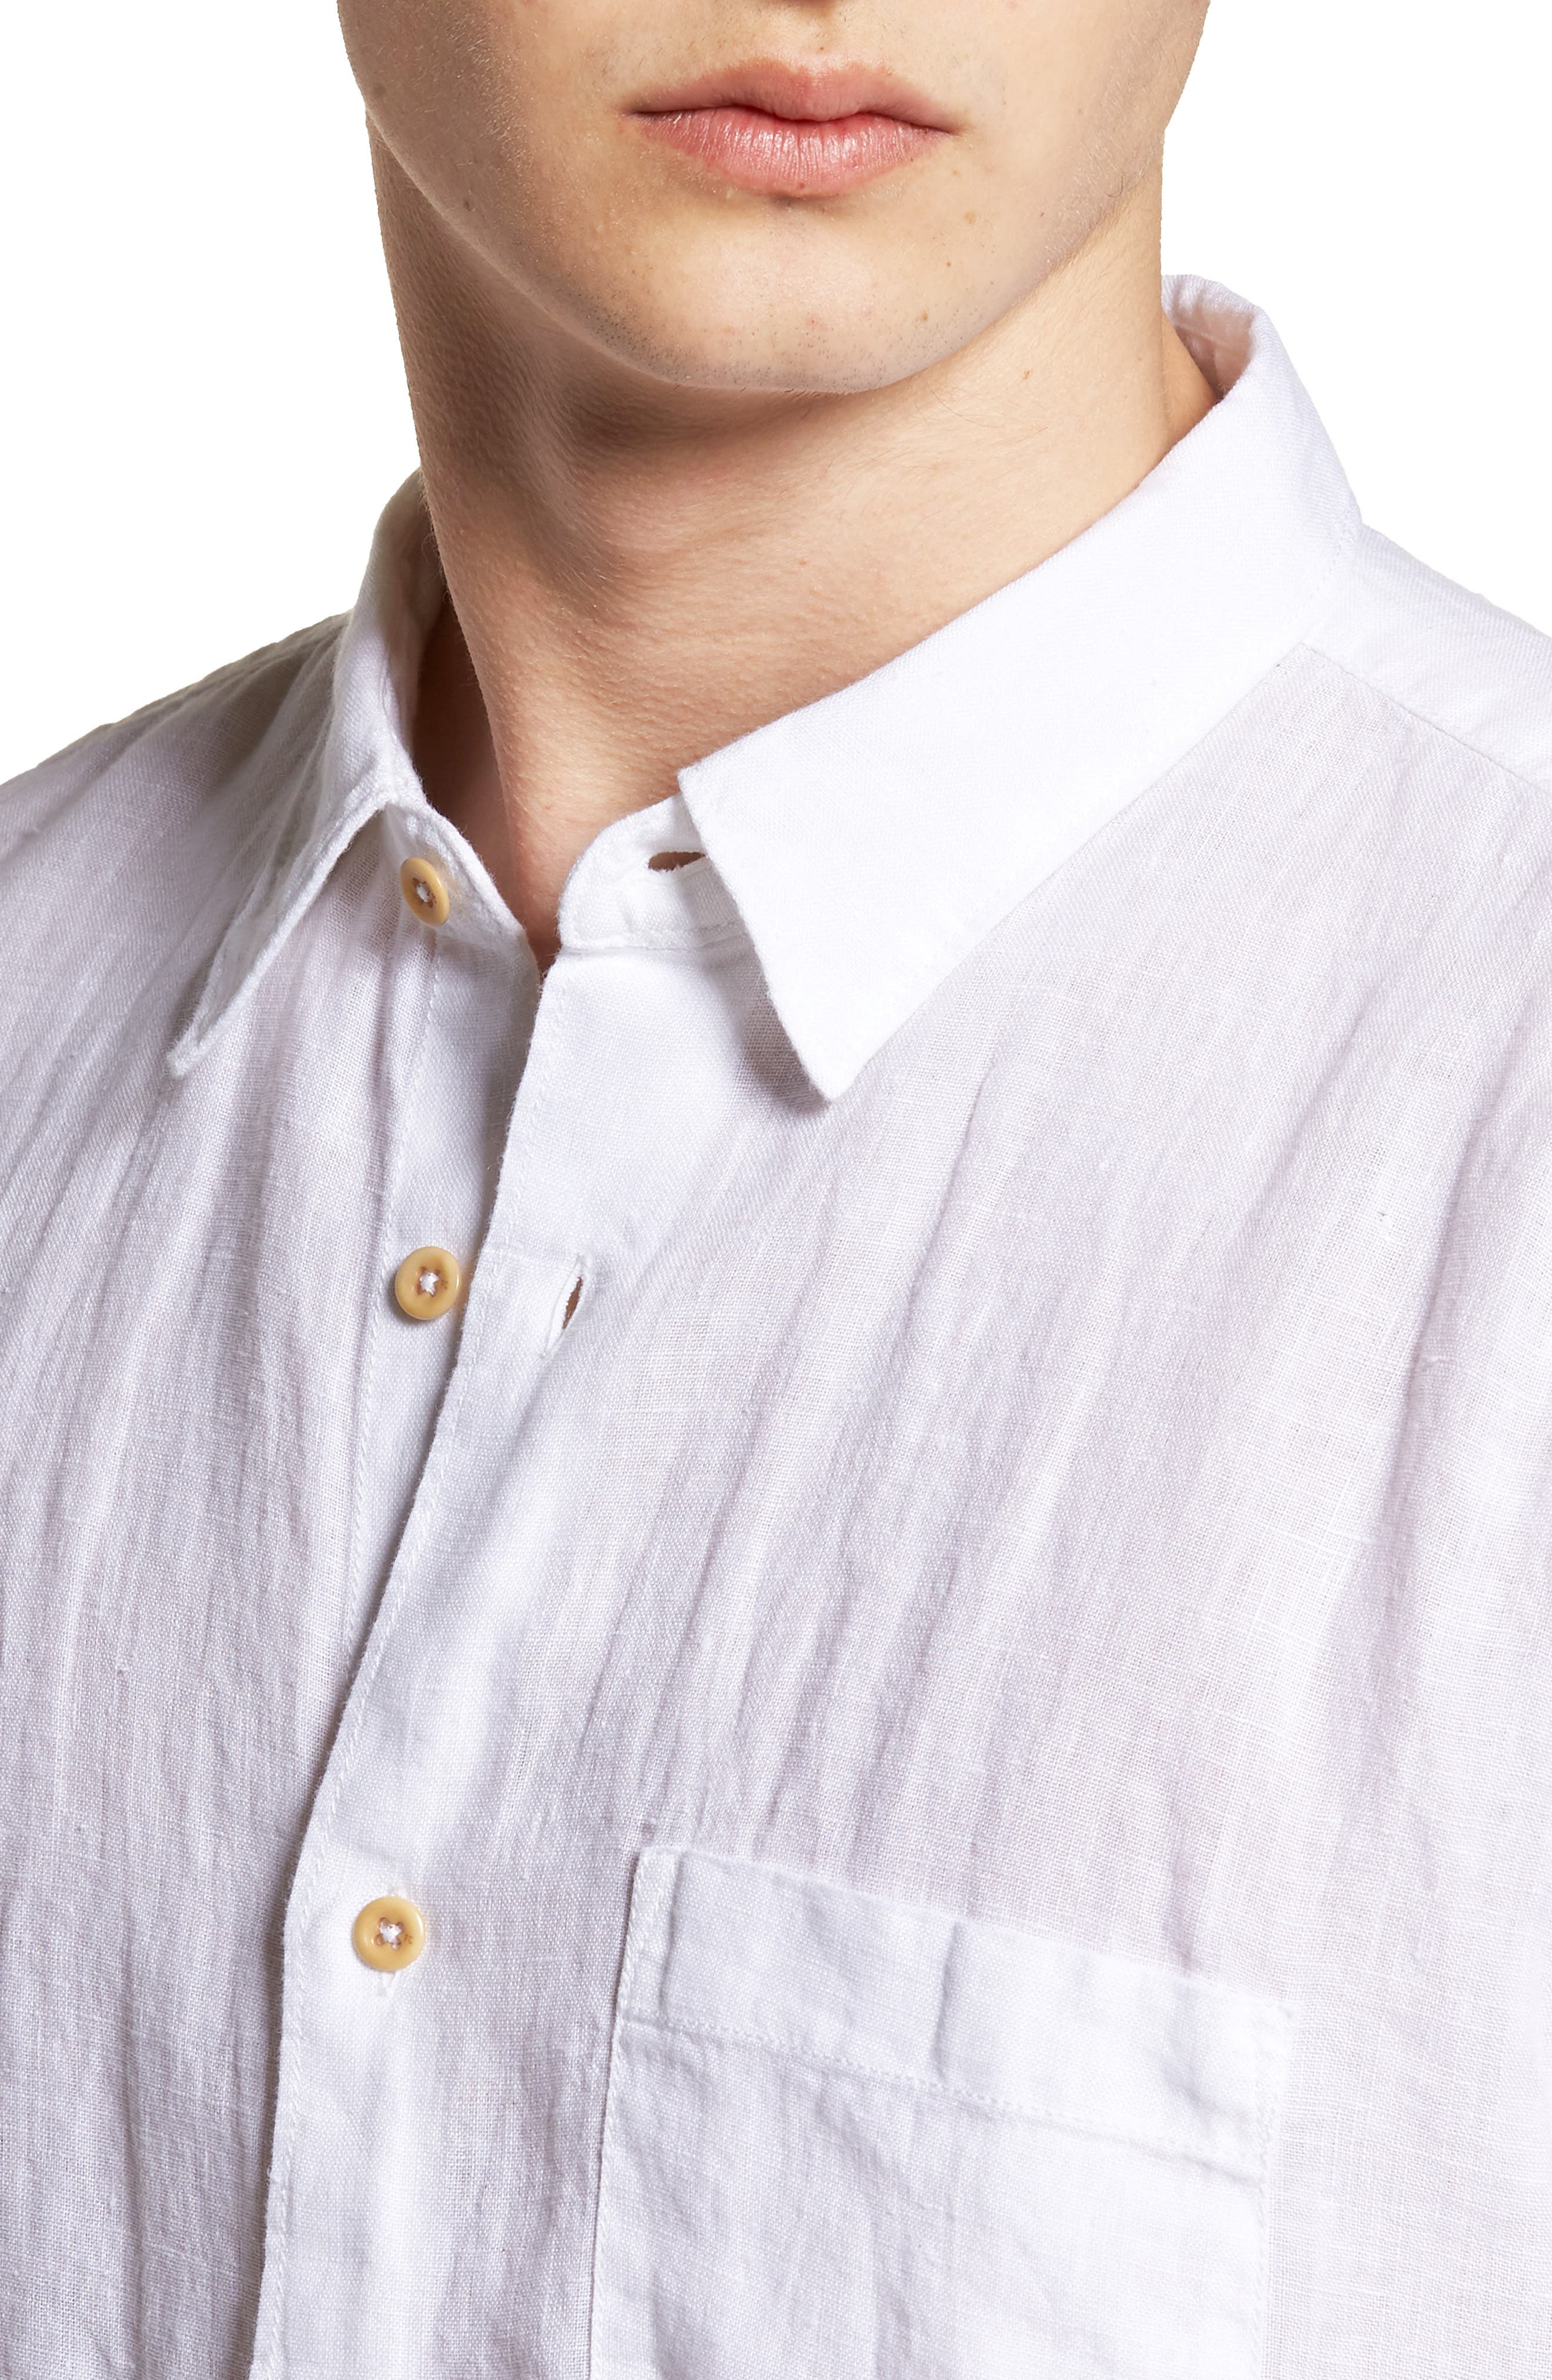 Relaxed Fit Solid Linen Sport Shirt,                             Alternate thumbnail 4, color,                             White